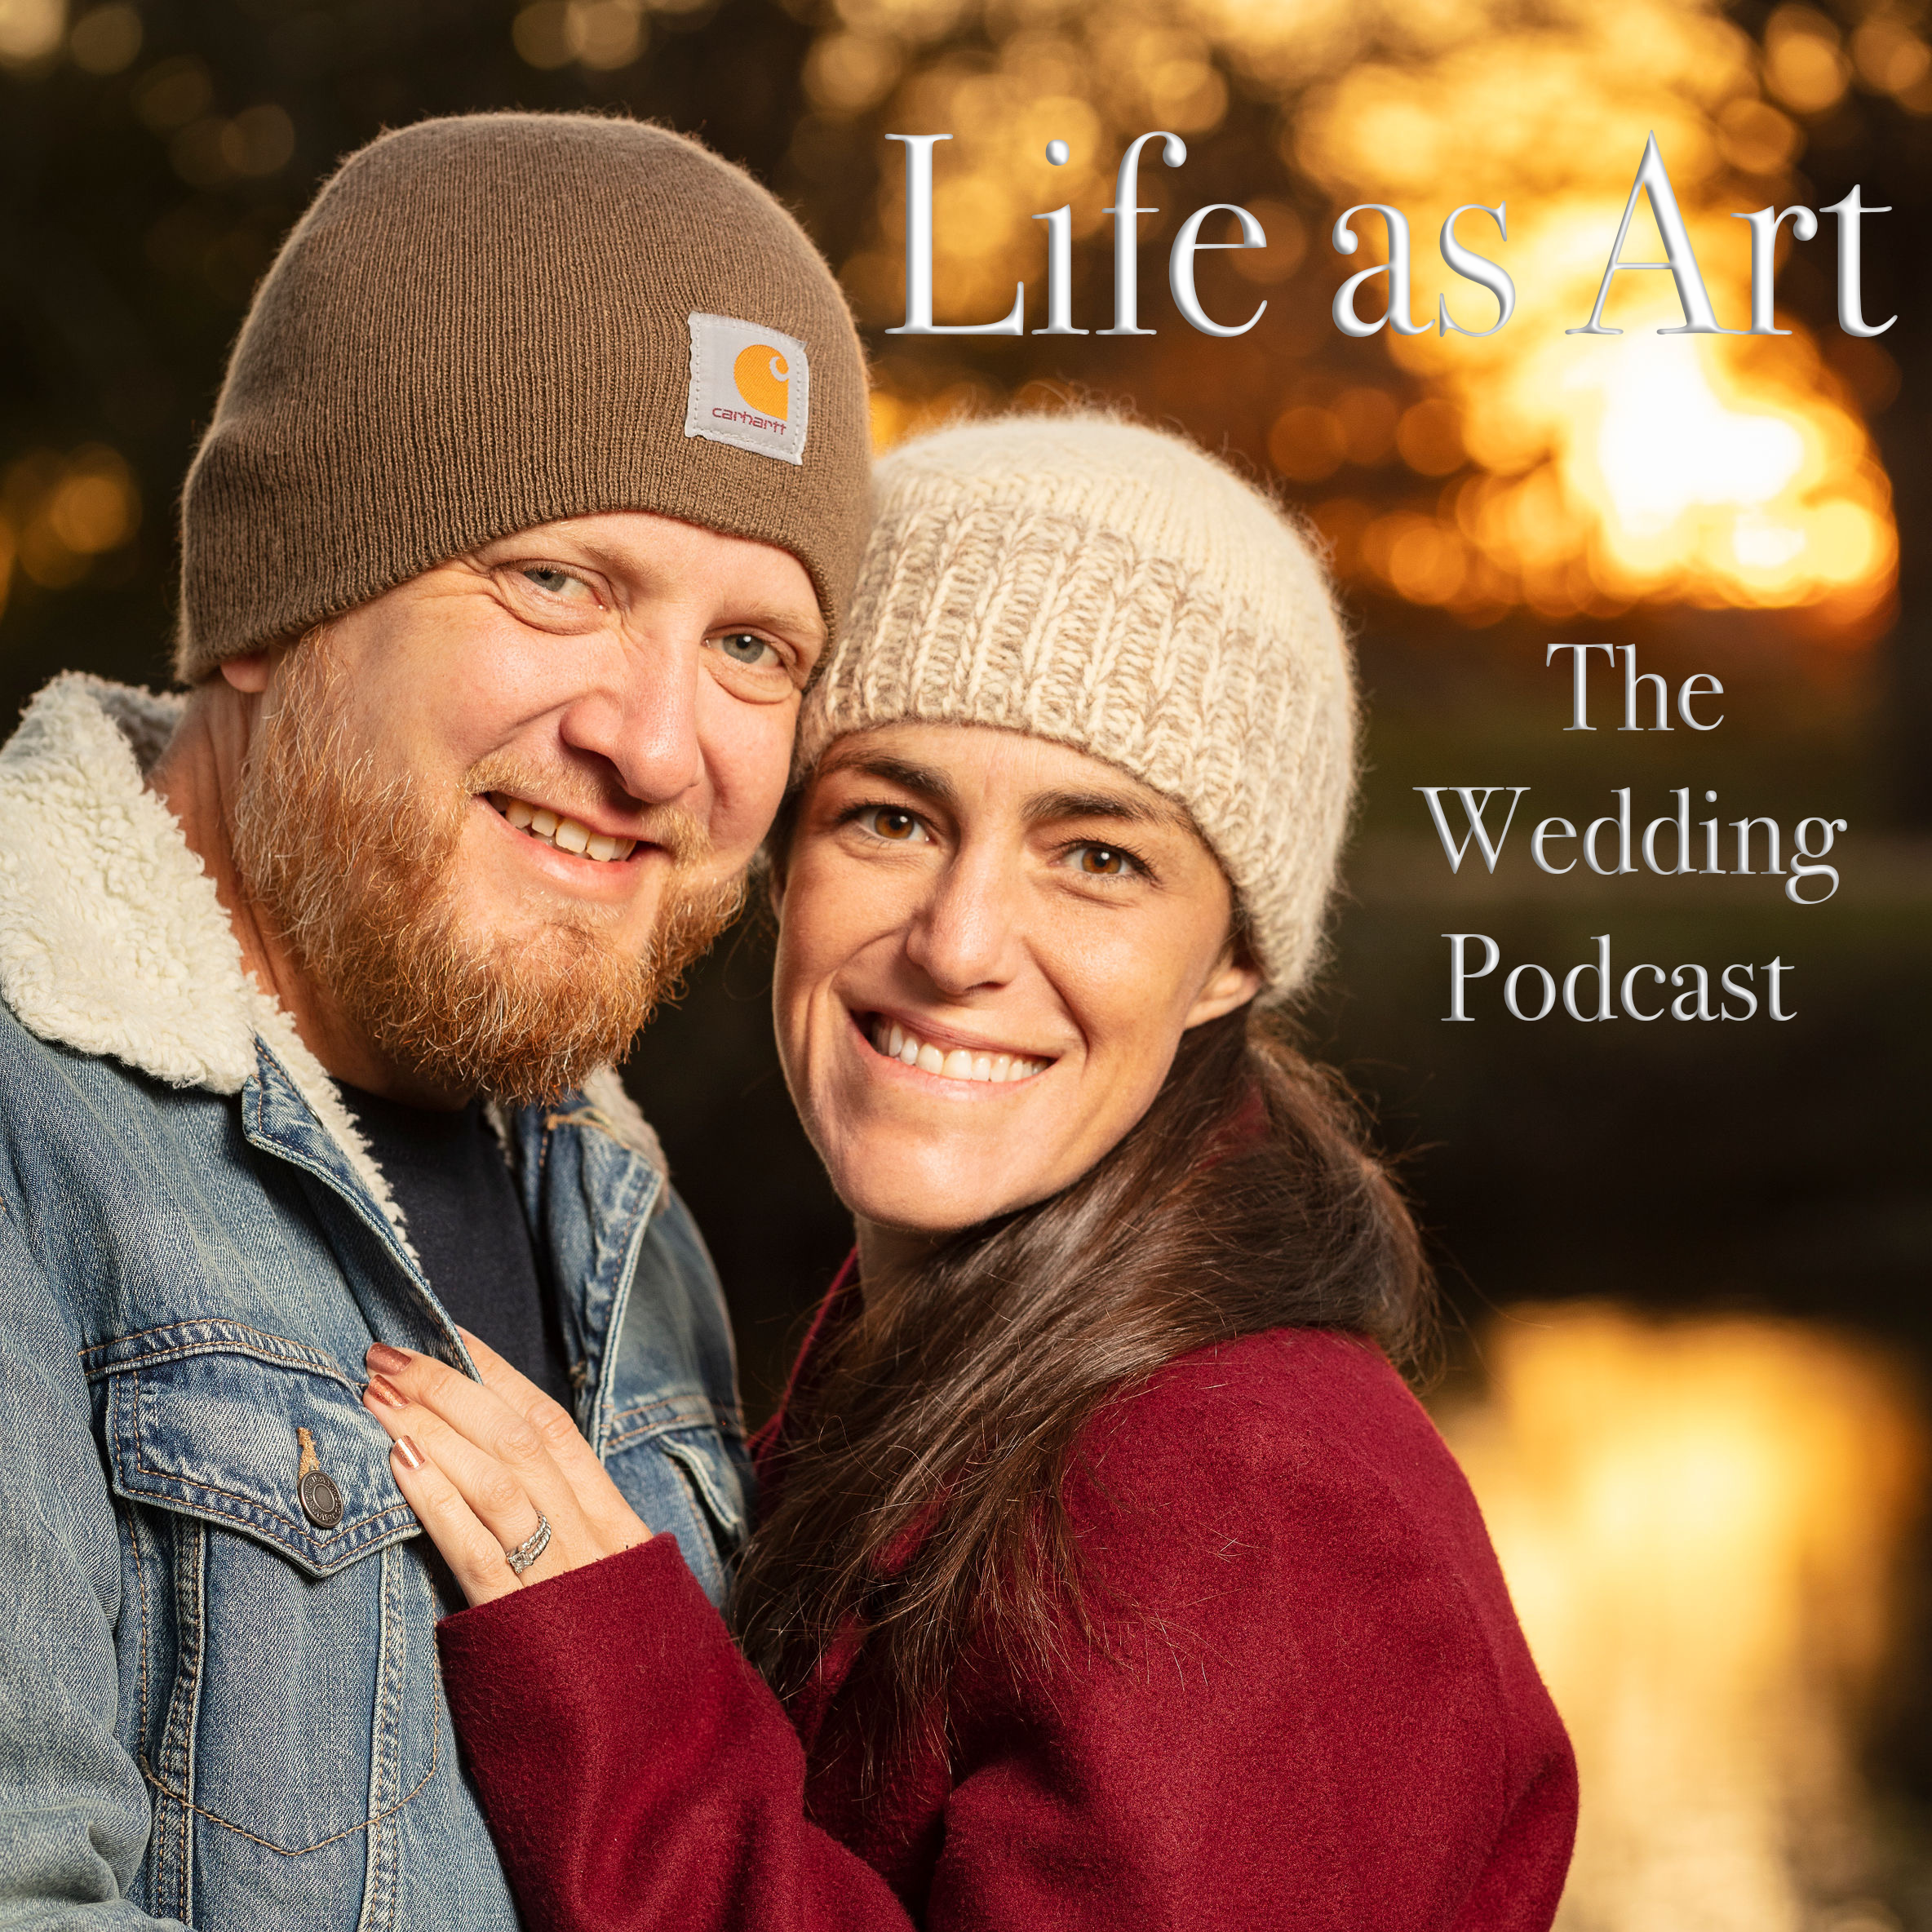 Life as Art The Wedding Podcast show art